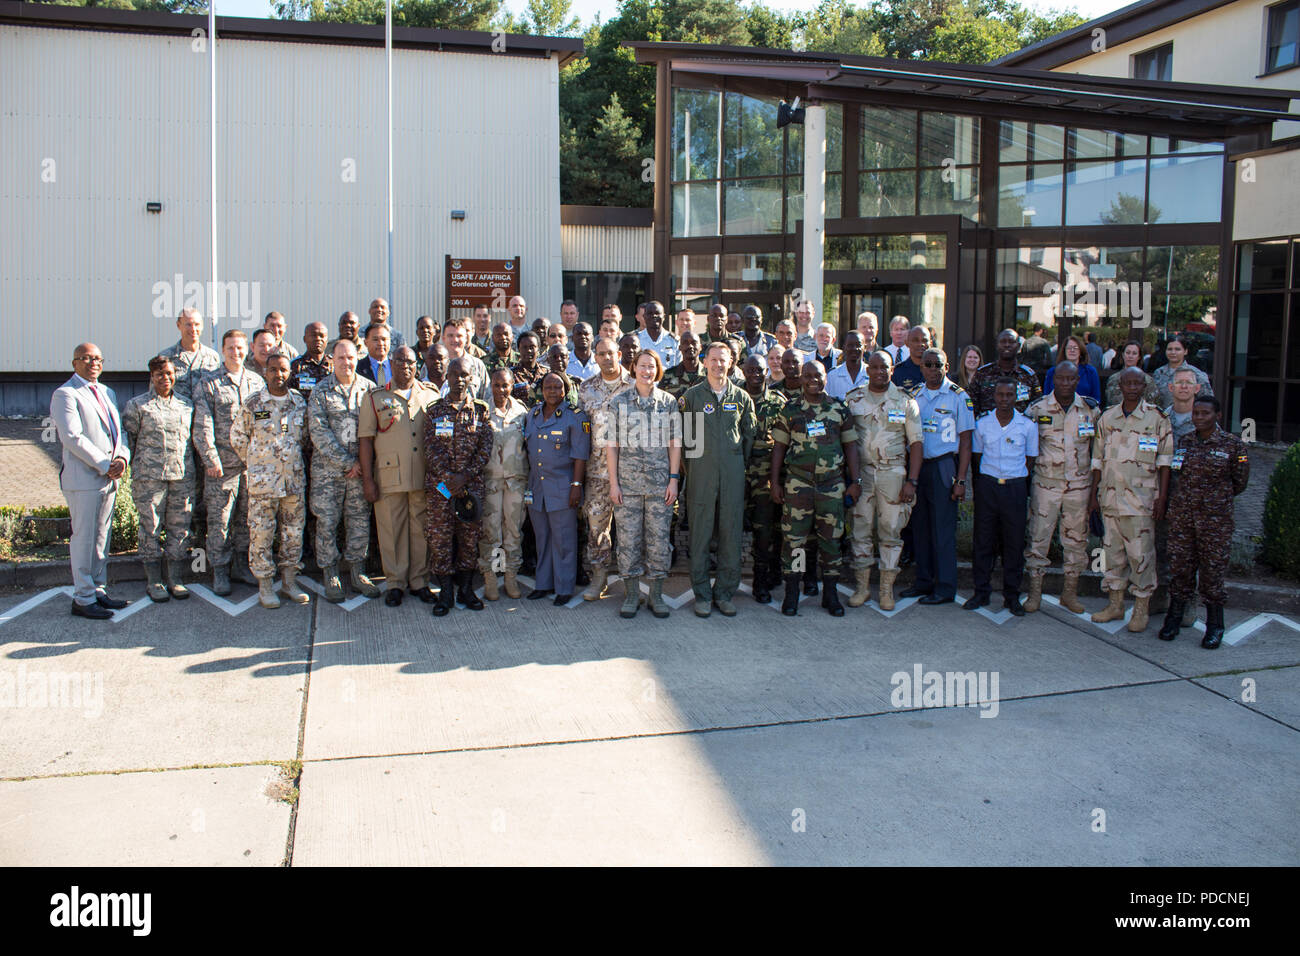 Participants from seven different African partner nations and U.S. Service Members pose for a group photo during African Partnership Flight hosted by U.S. Air Forces Africa and co-hosted by Mauritania and Senegal at Ramstein Air Base, Germany, Aug. 6, 2018. The APF program is Air Forces in Africa's premier security cooperation program with African partner nations to improve professional military aviation knowledge and skills. (U.S. Army photo by Spc. Craig Jensen) - Stock Image